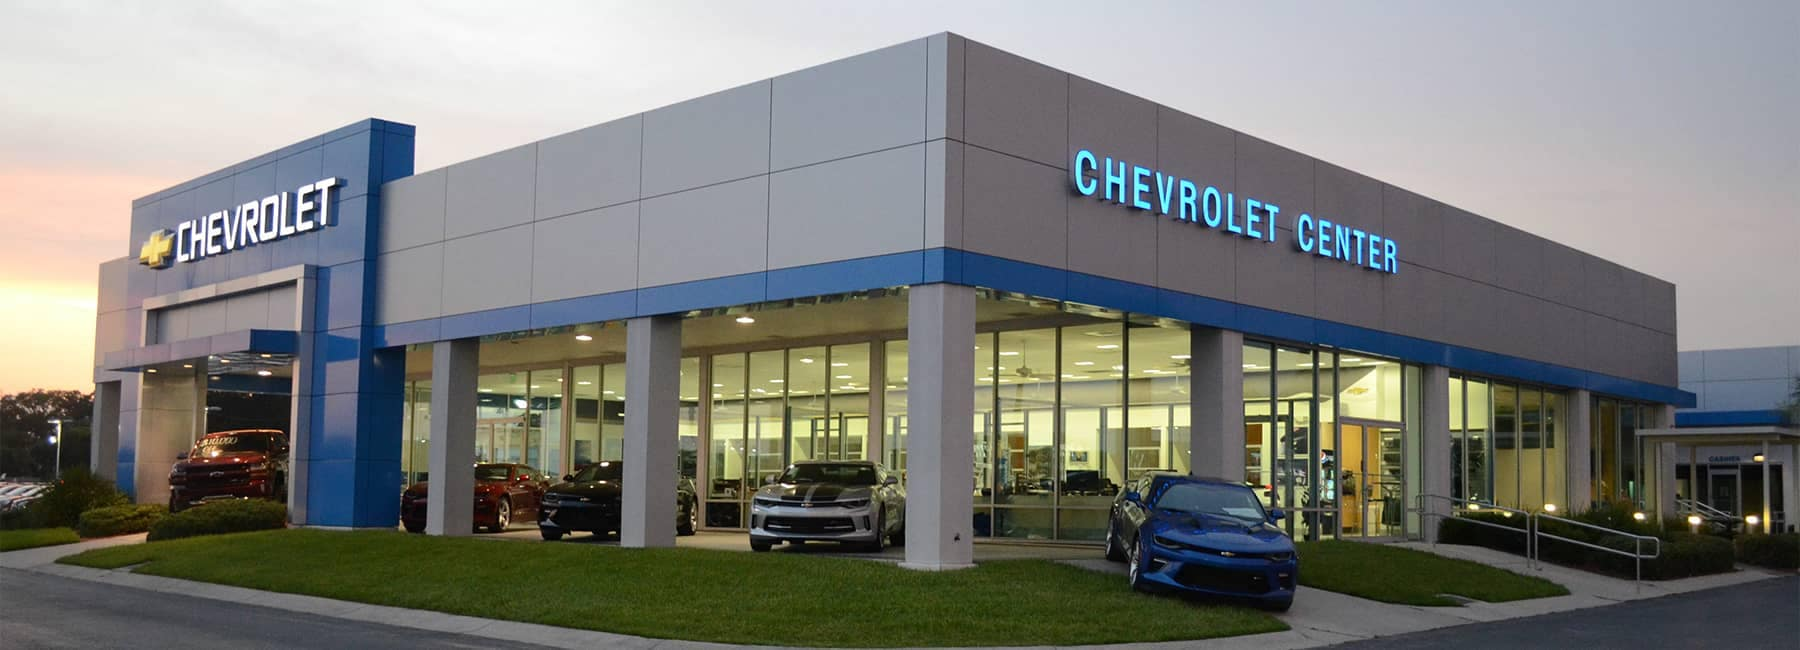 Chevrolet Center Dealership Exterior